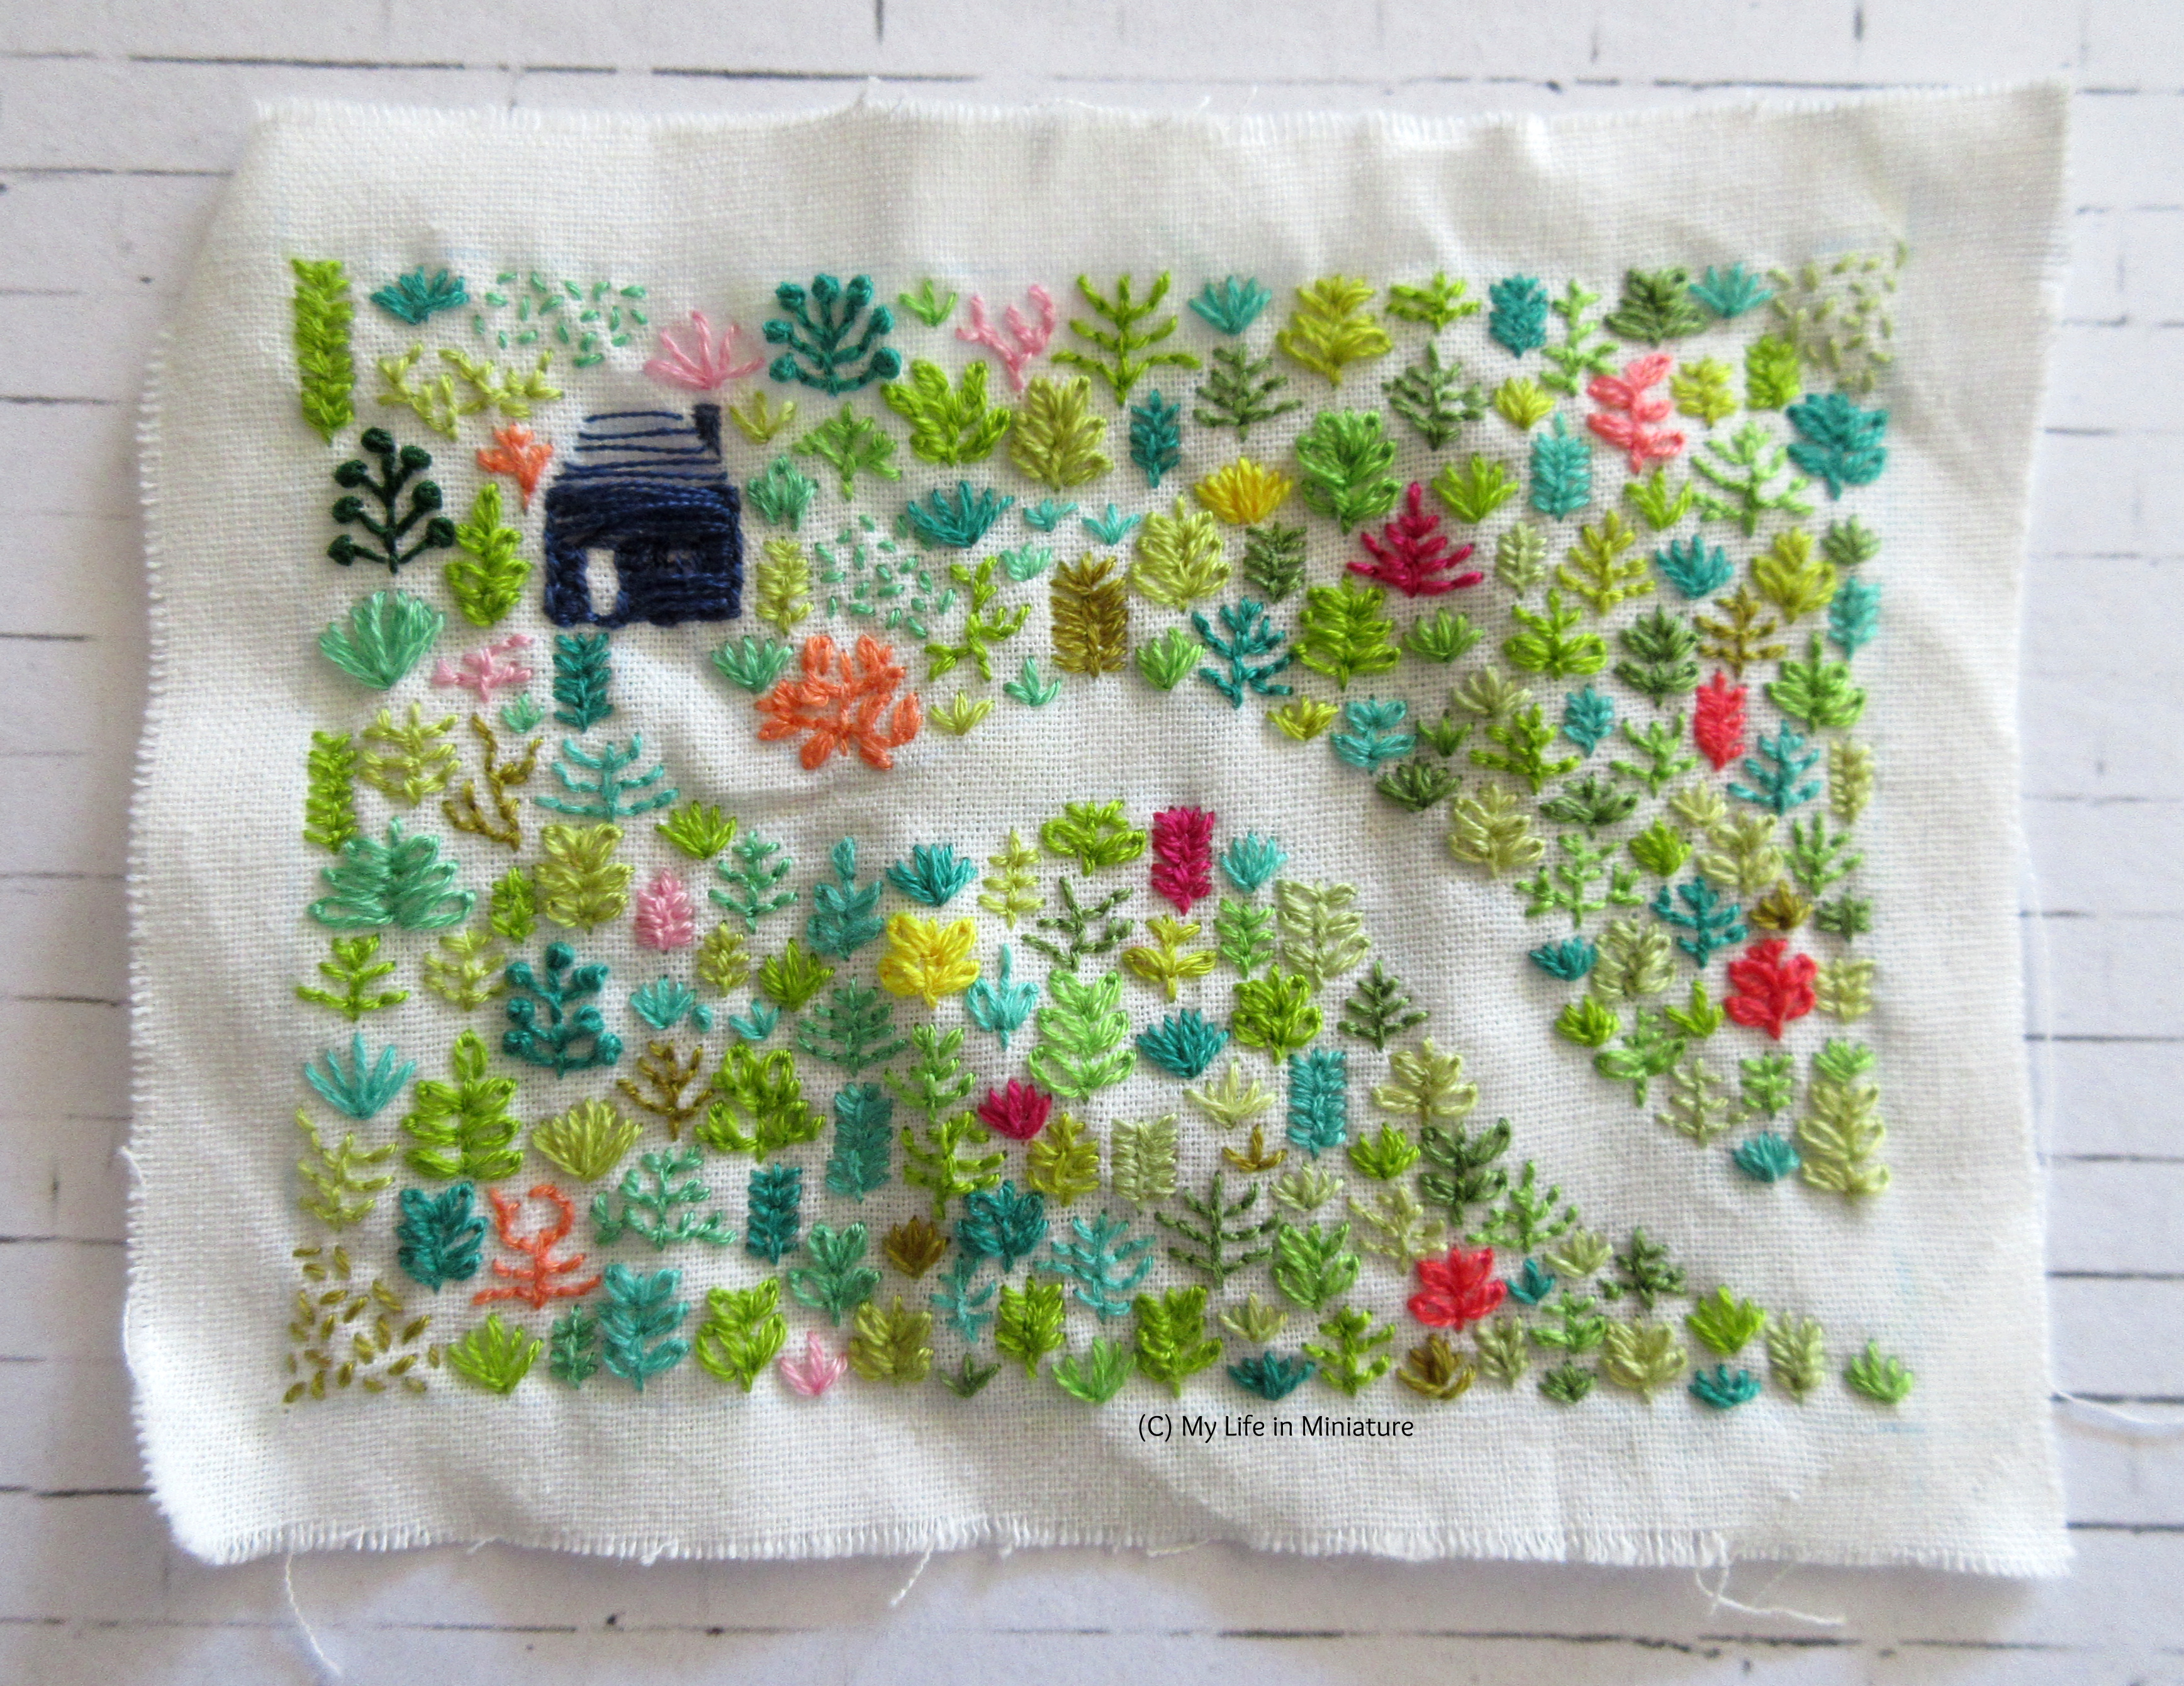 A square of white fabric sits on a white background. Embroidered on it is a navy blue house, surrounded by plants that also line a path, curving towards the bottom-right.